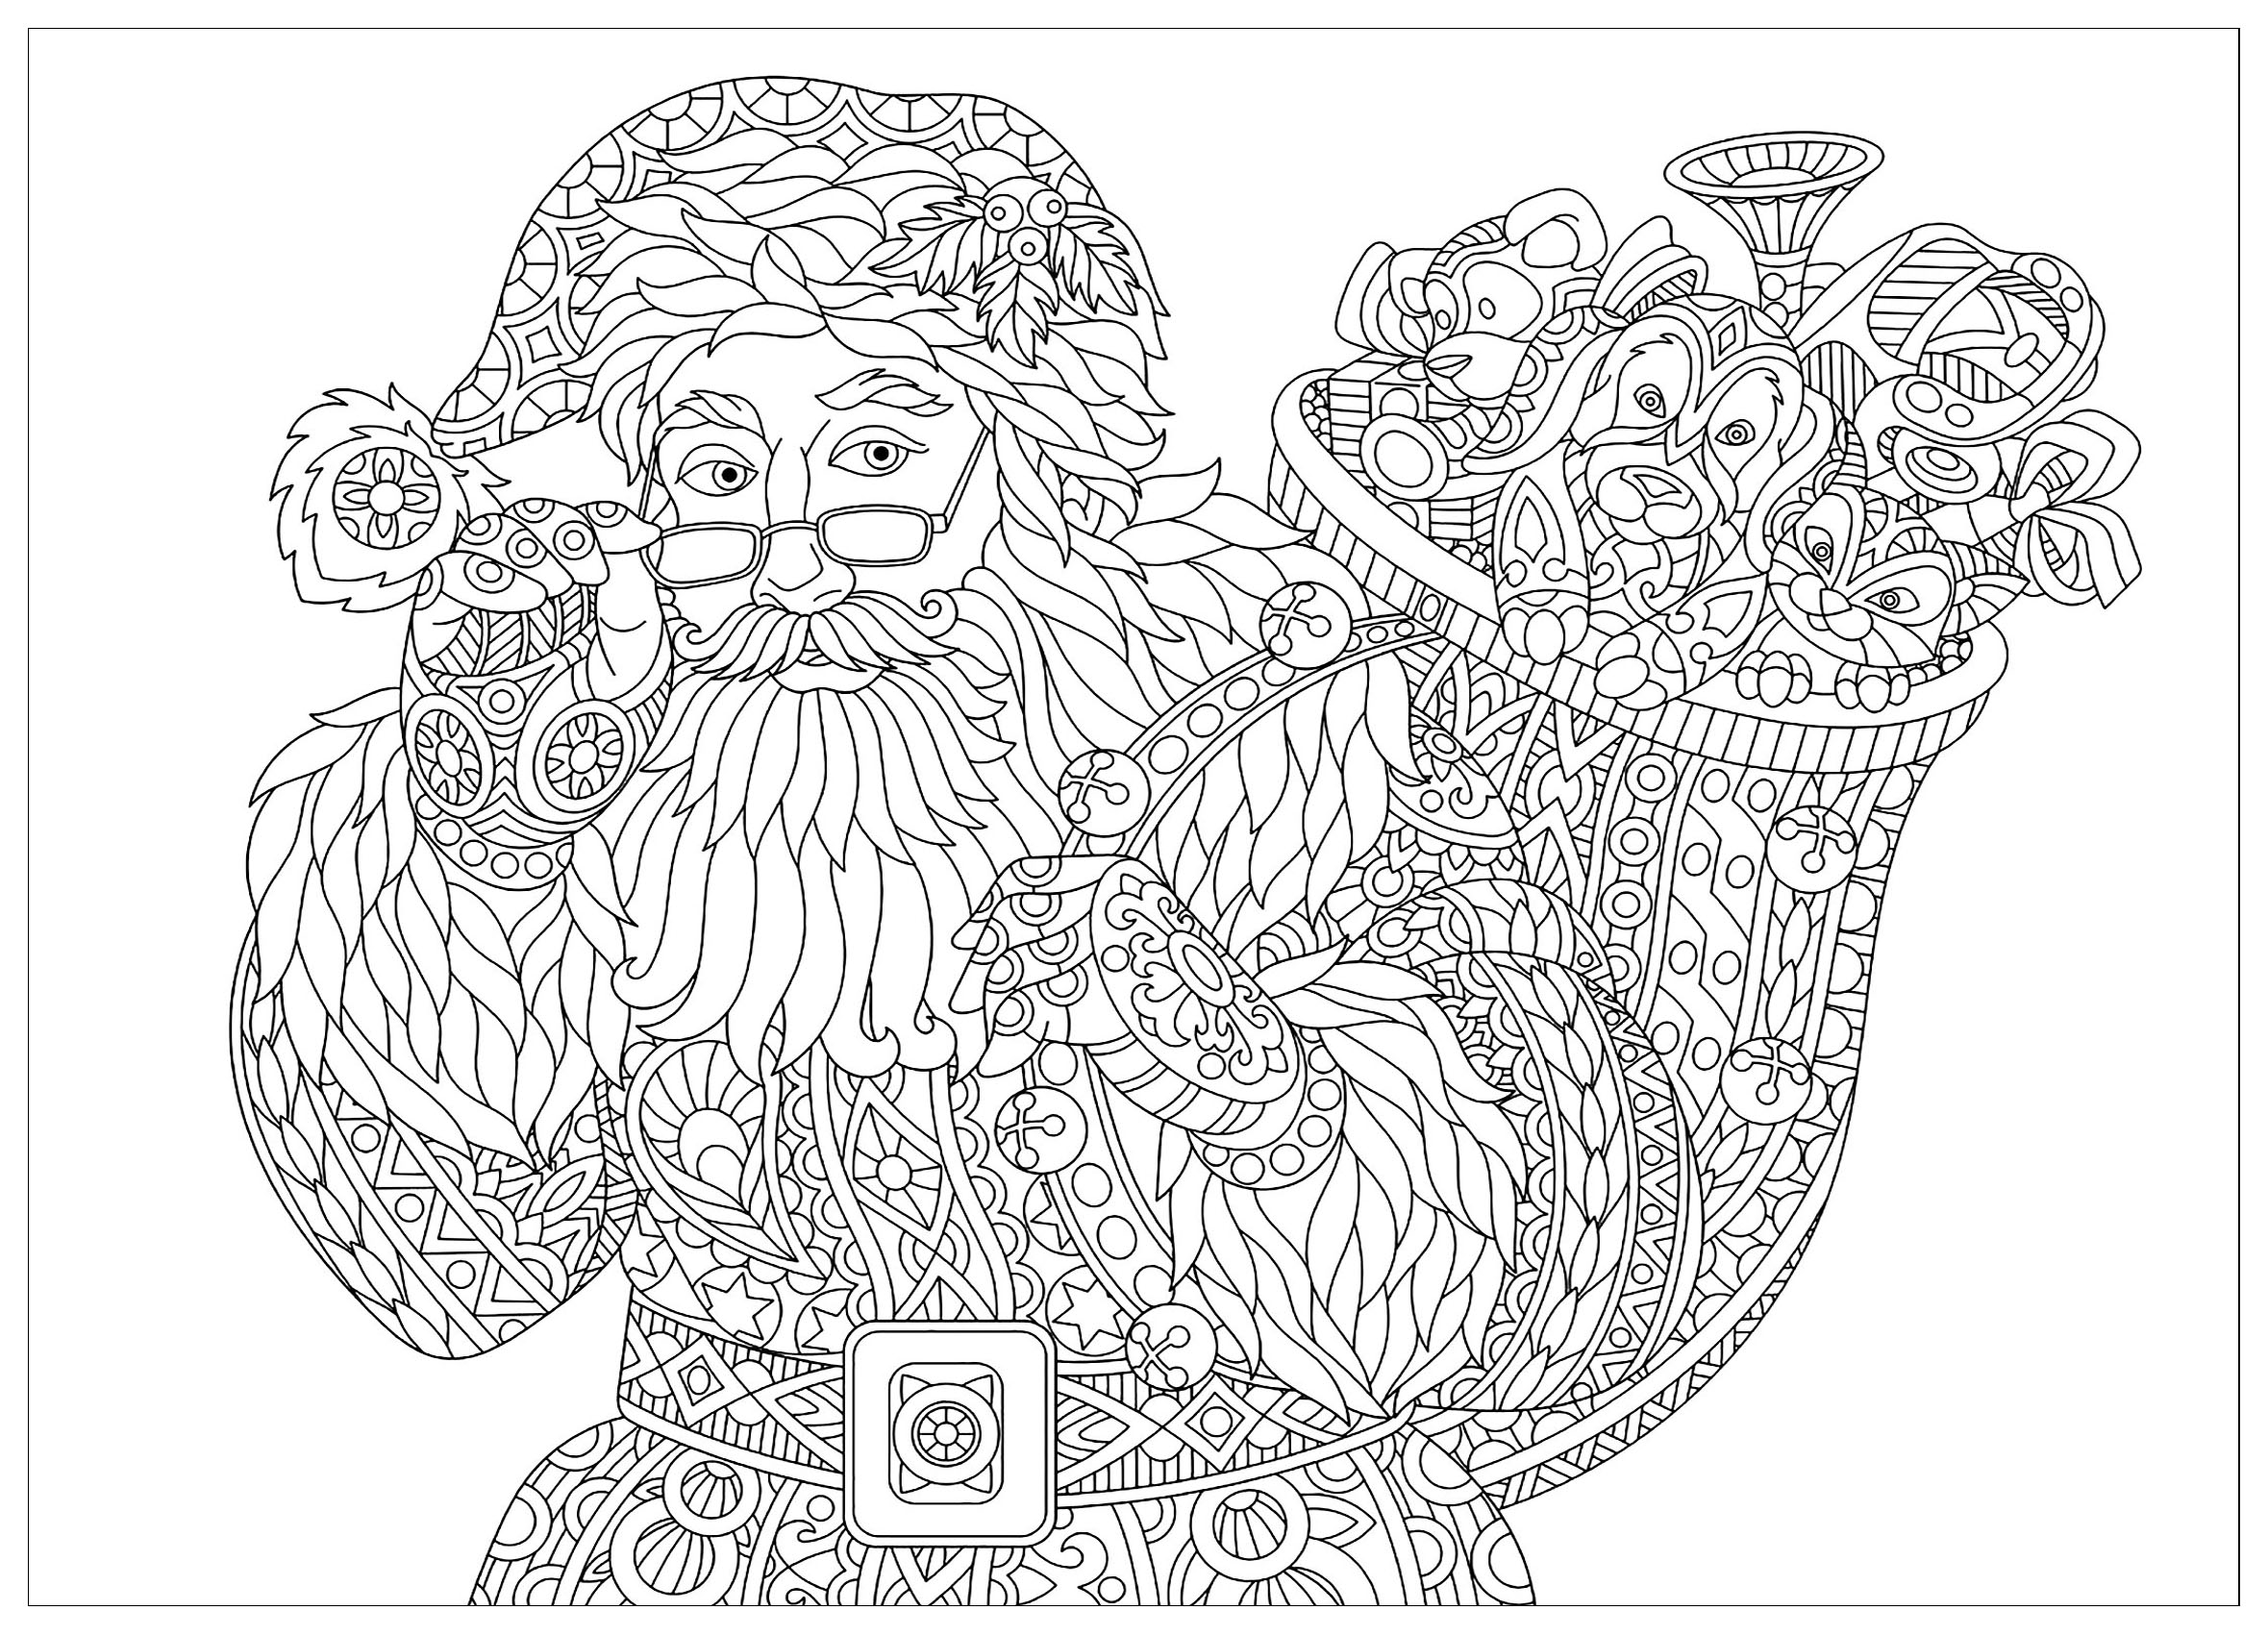 Coloring Page Of Santa Claus With Full Bag Holiday Gifts And Christmas Vintage Snowflakes In Background